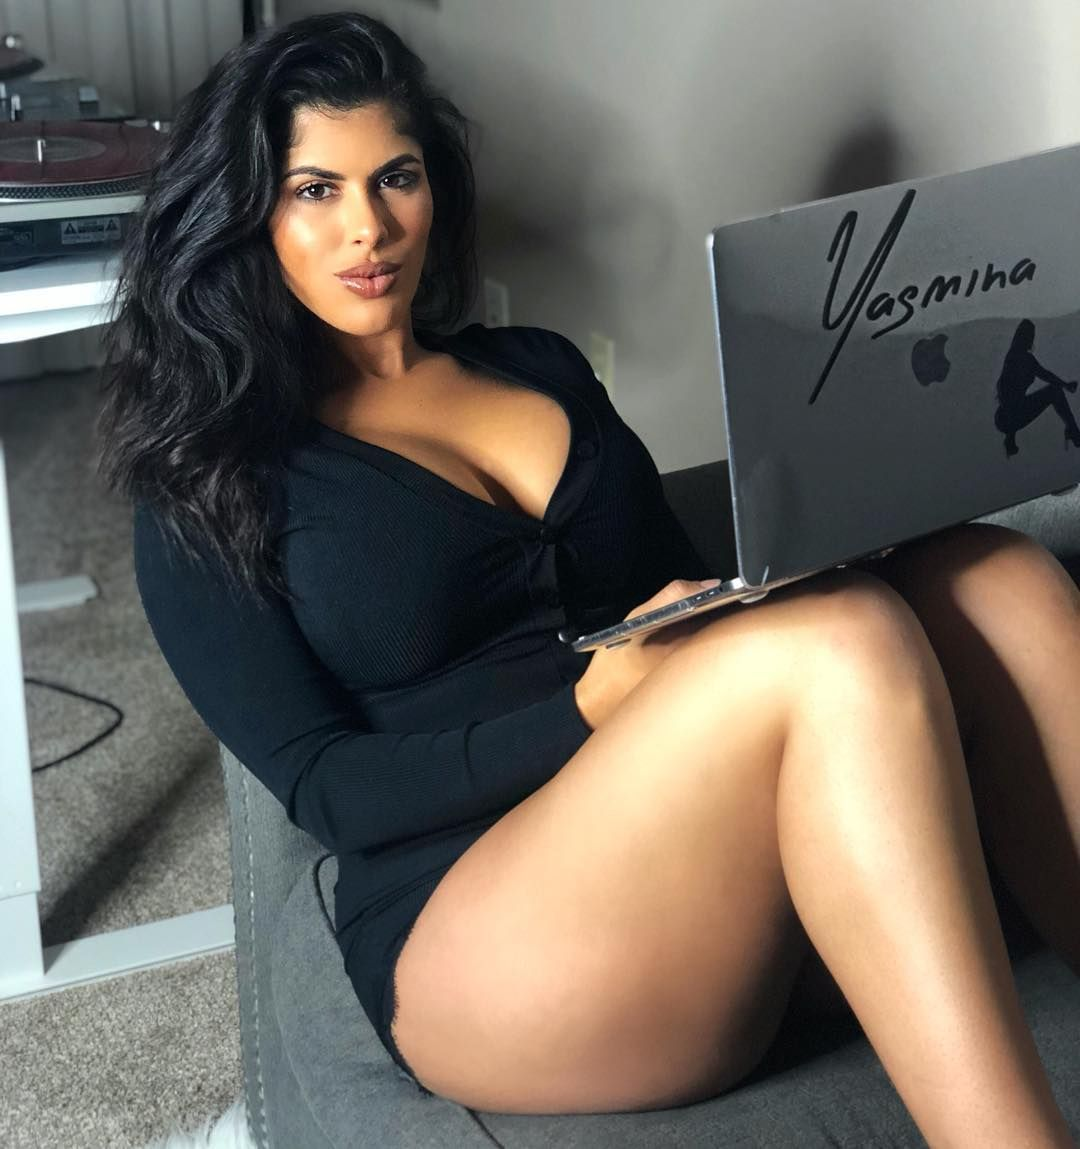 Downloading New To My Serato What S Your Favourite New Song Out So I Can Add It Pretty Beautiful Girl Big Girl Fashion Plus Size Beauty This song has been in my head all day lol i've caught myself singing it out loud. downloading new to my serato what